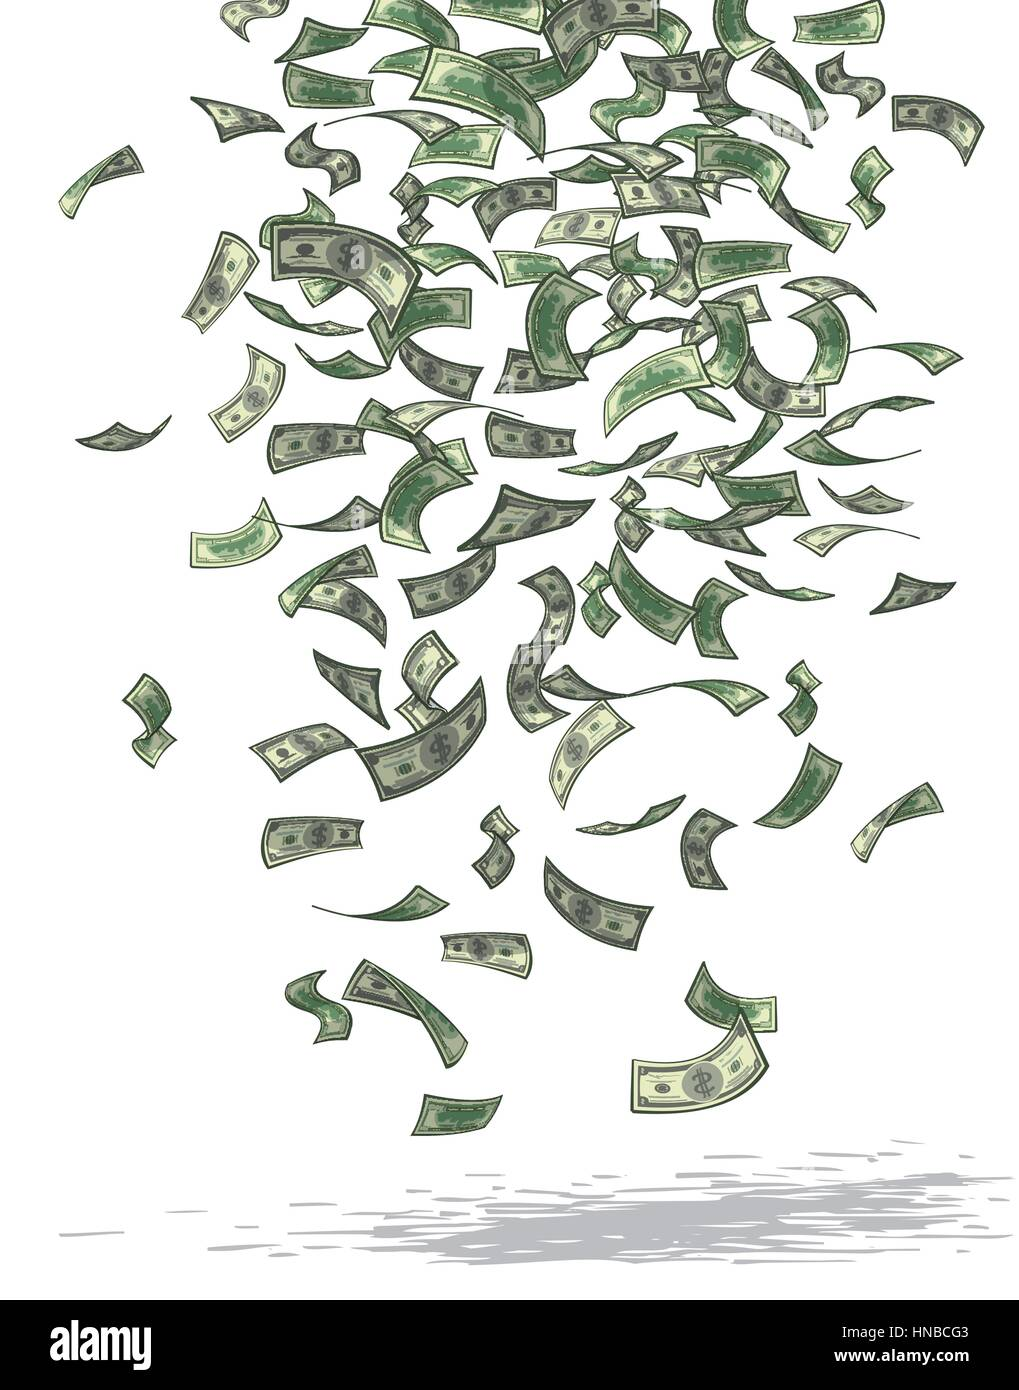 Vector illustration of money raining from above. - Stock Image